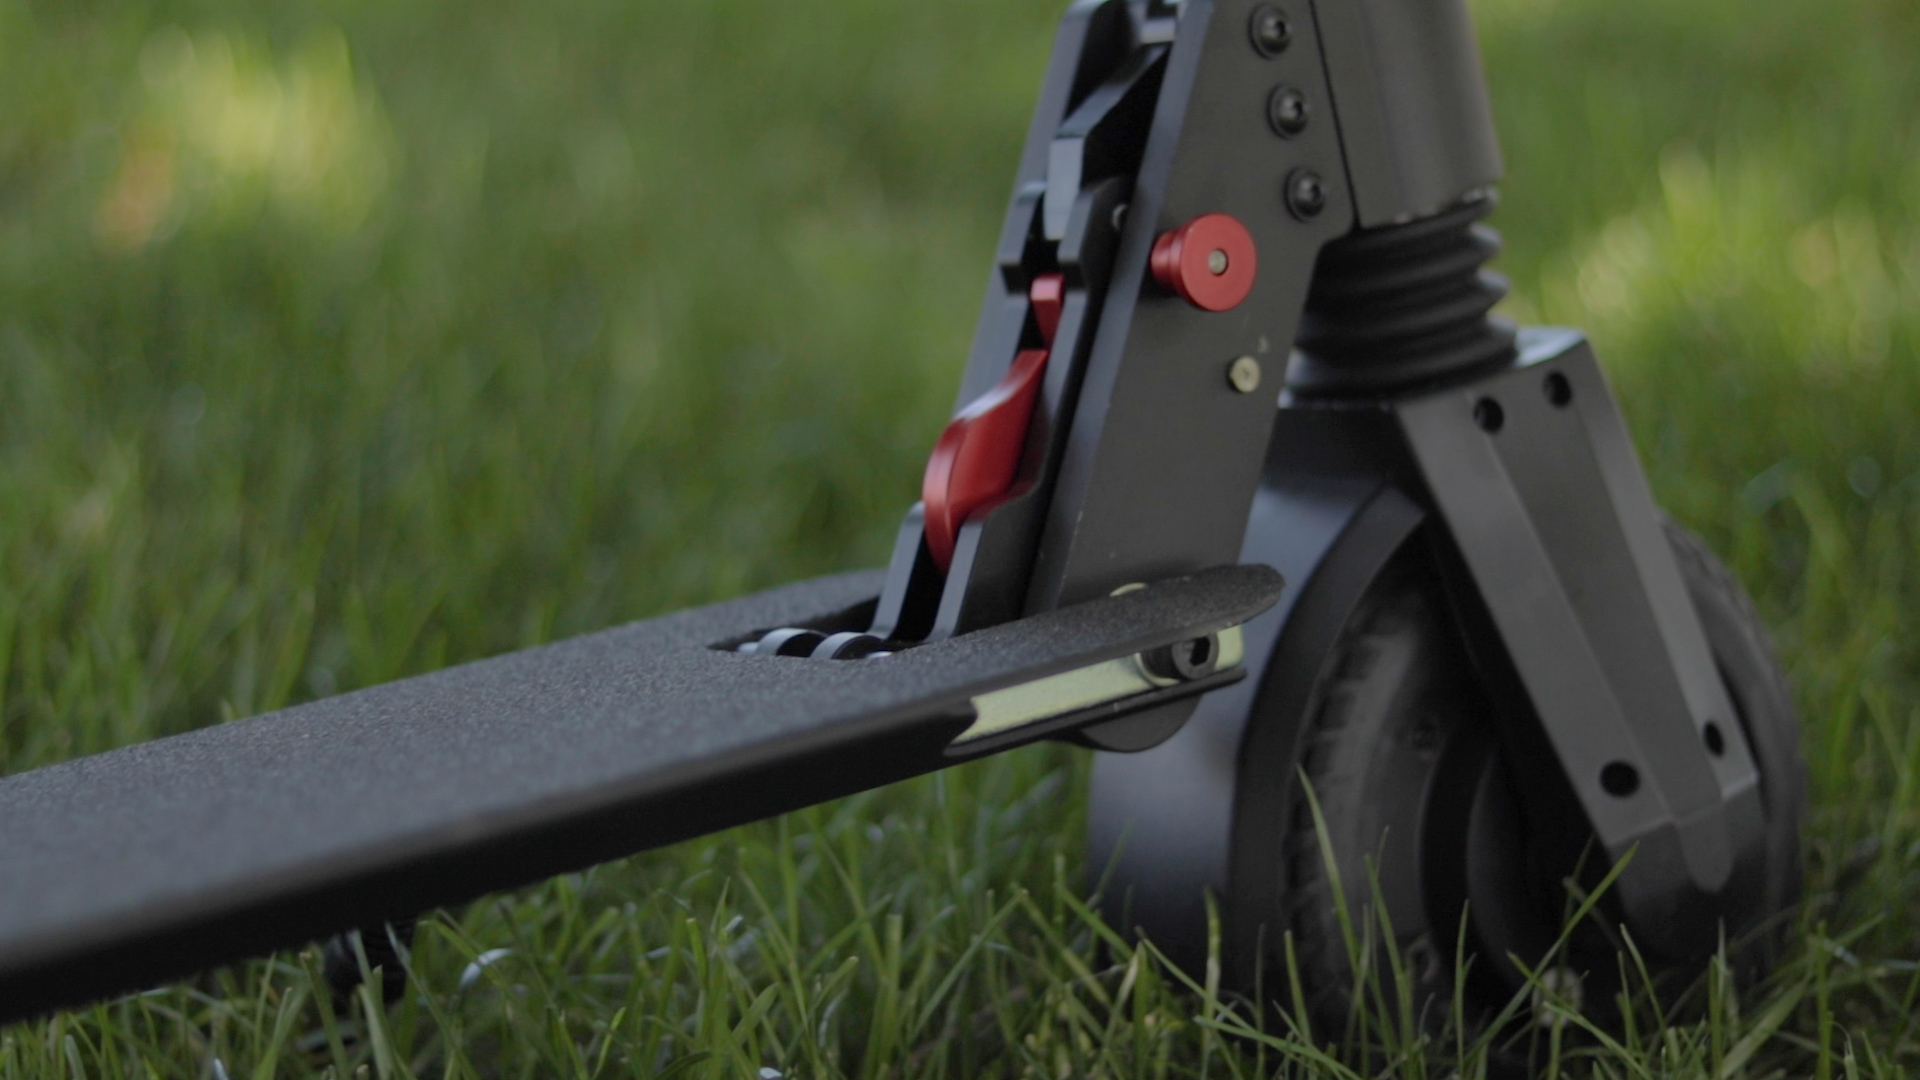 electrified-reviews-fluidfreeride-mosquito-electric-scooter-review-locking-mechanism.jpg